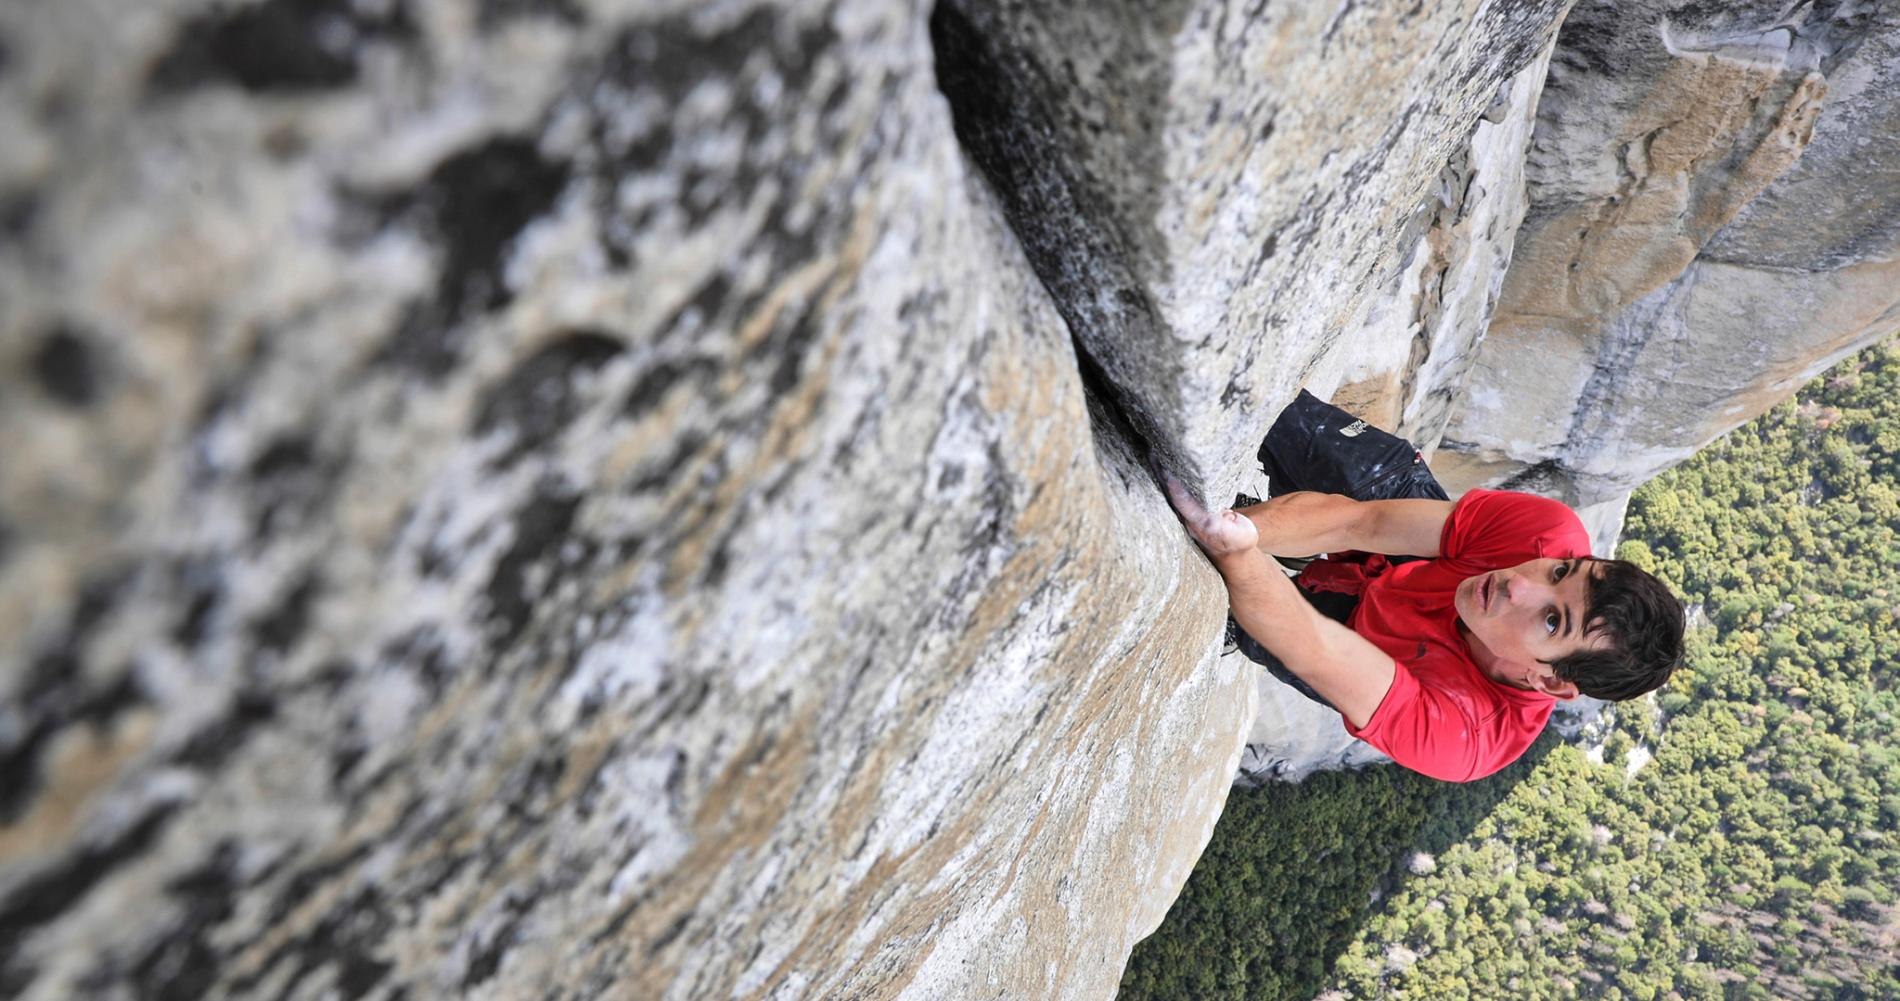 alex-honnold-freerider-climb.adapt.1900.1